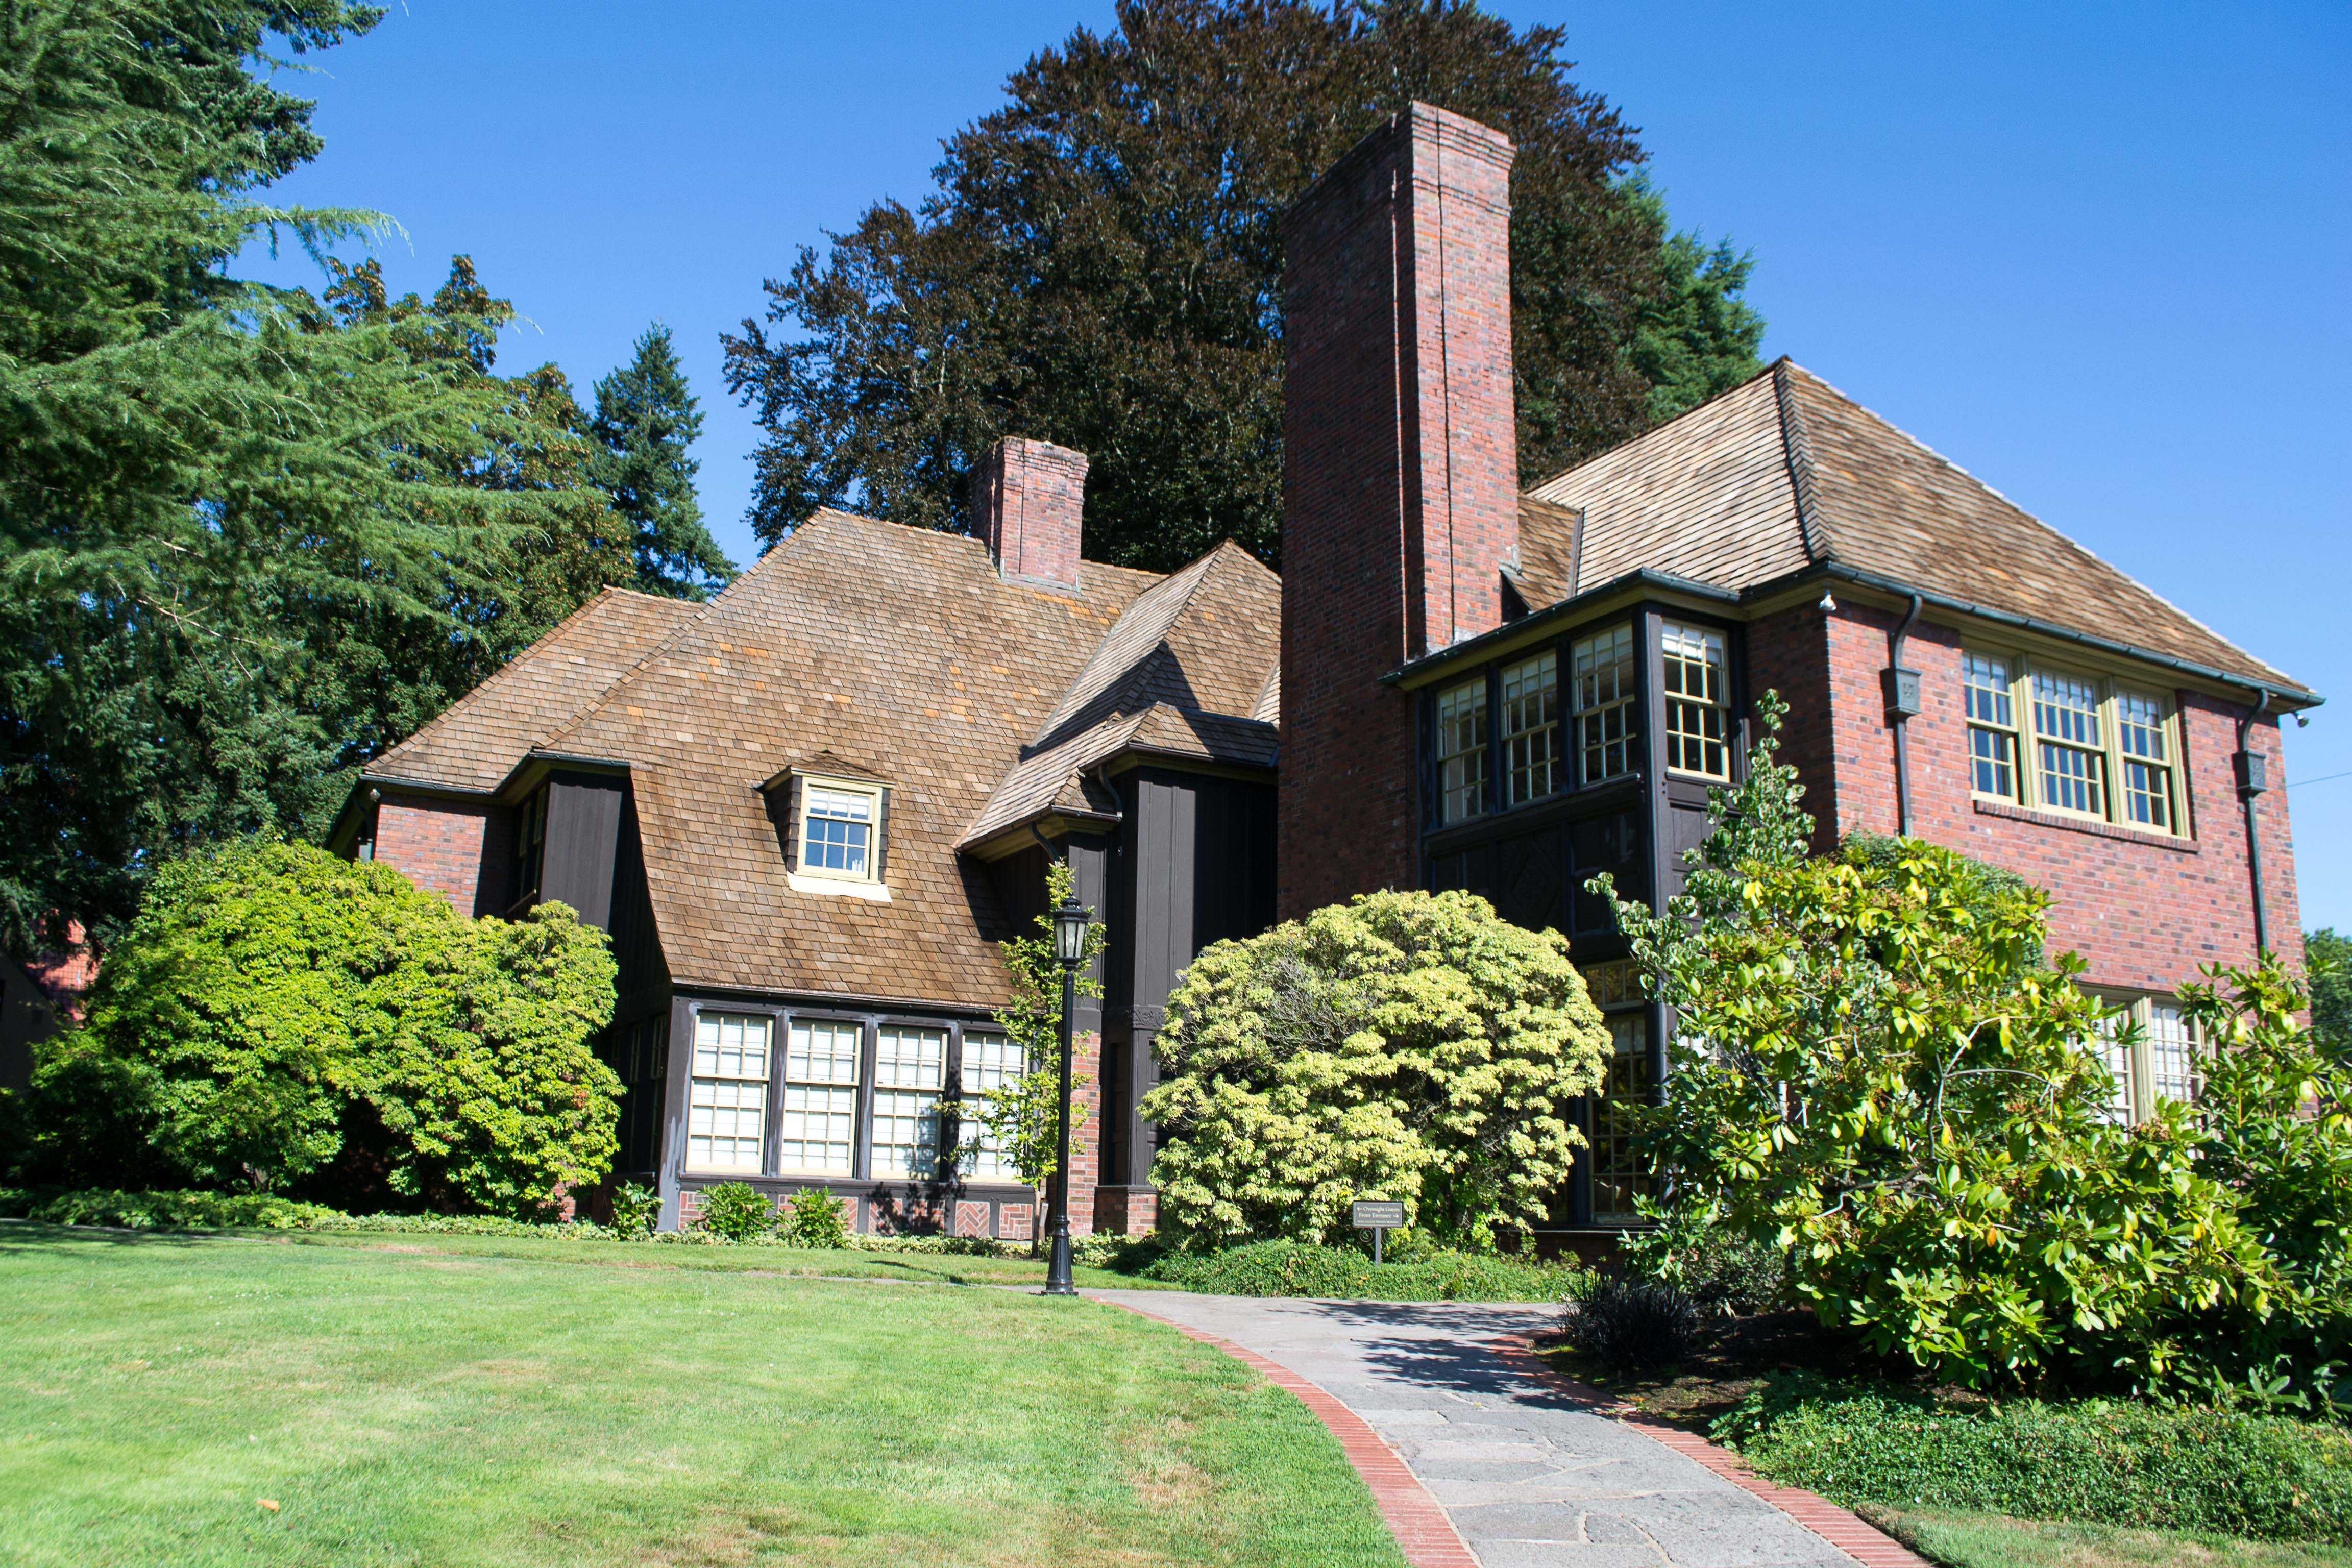 File:Parker House 2, Reed College